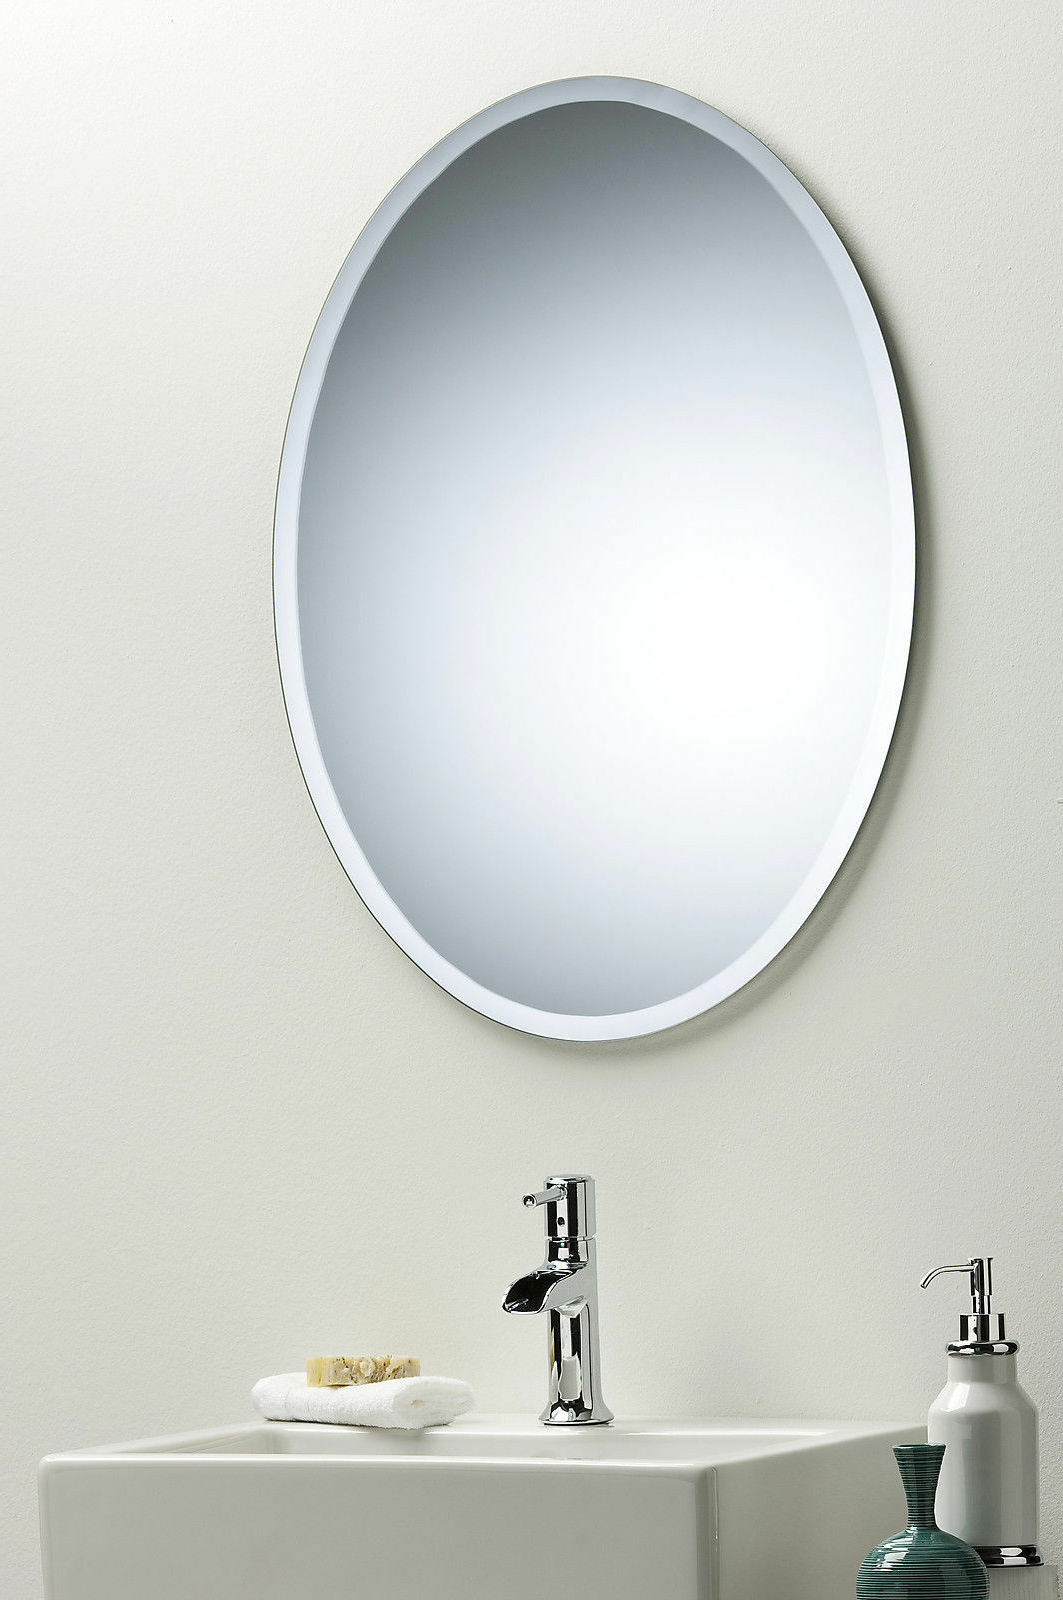 Well Known Details About Bathroom Wall Mirror Modern Stylish Oval With Bevel Frameless Plain 2Ae Pertaining To Plain Wall Mirrors (View 6 of 20)